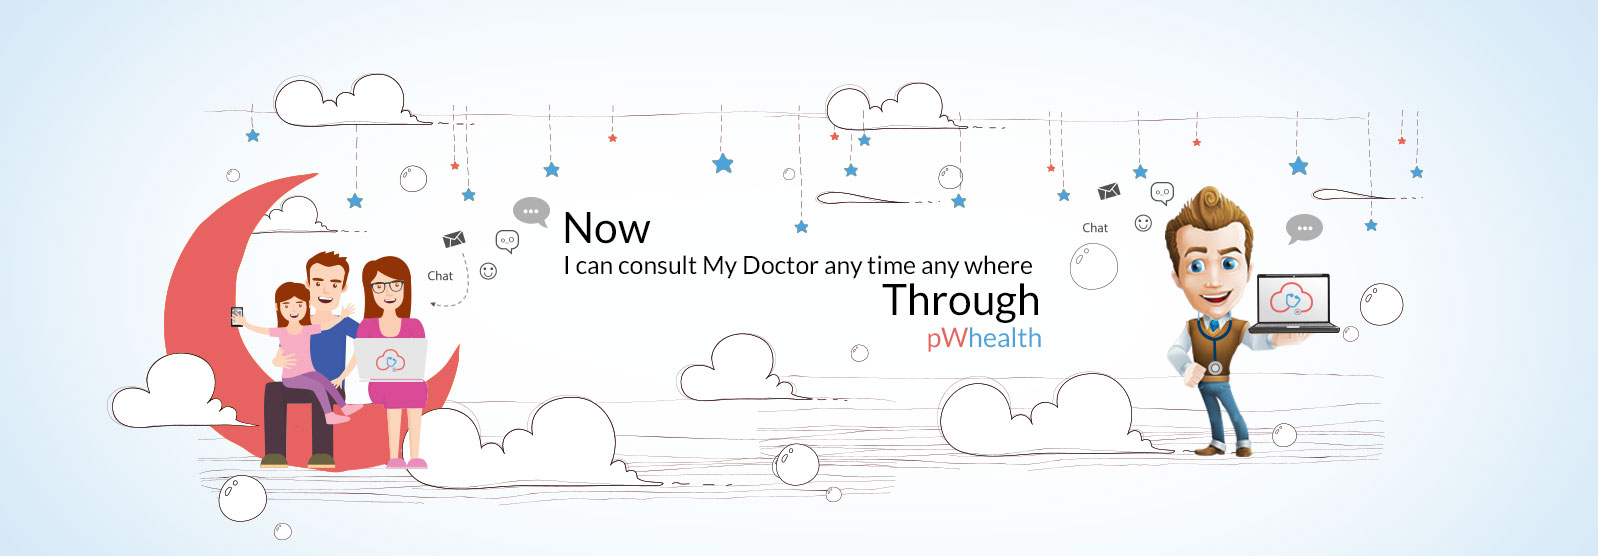 Doctor Consultation Banners Formal Welcome Banners